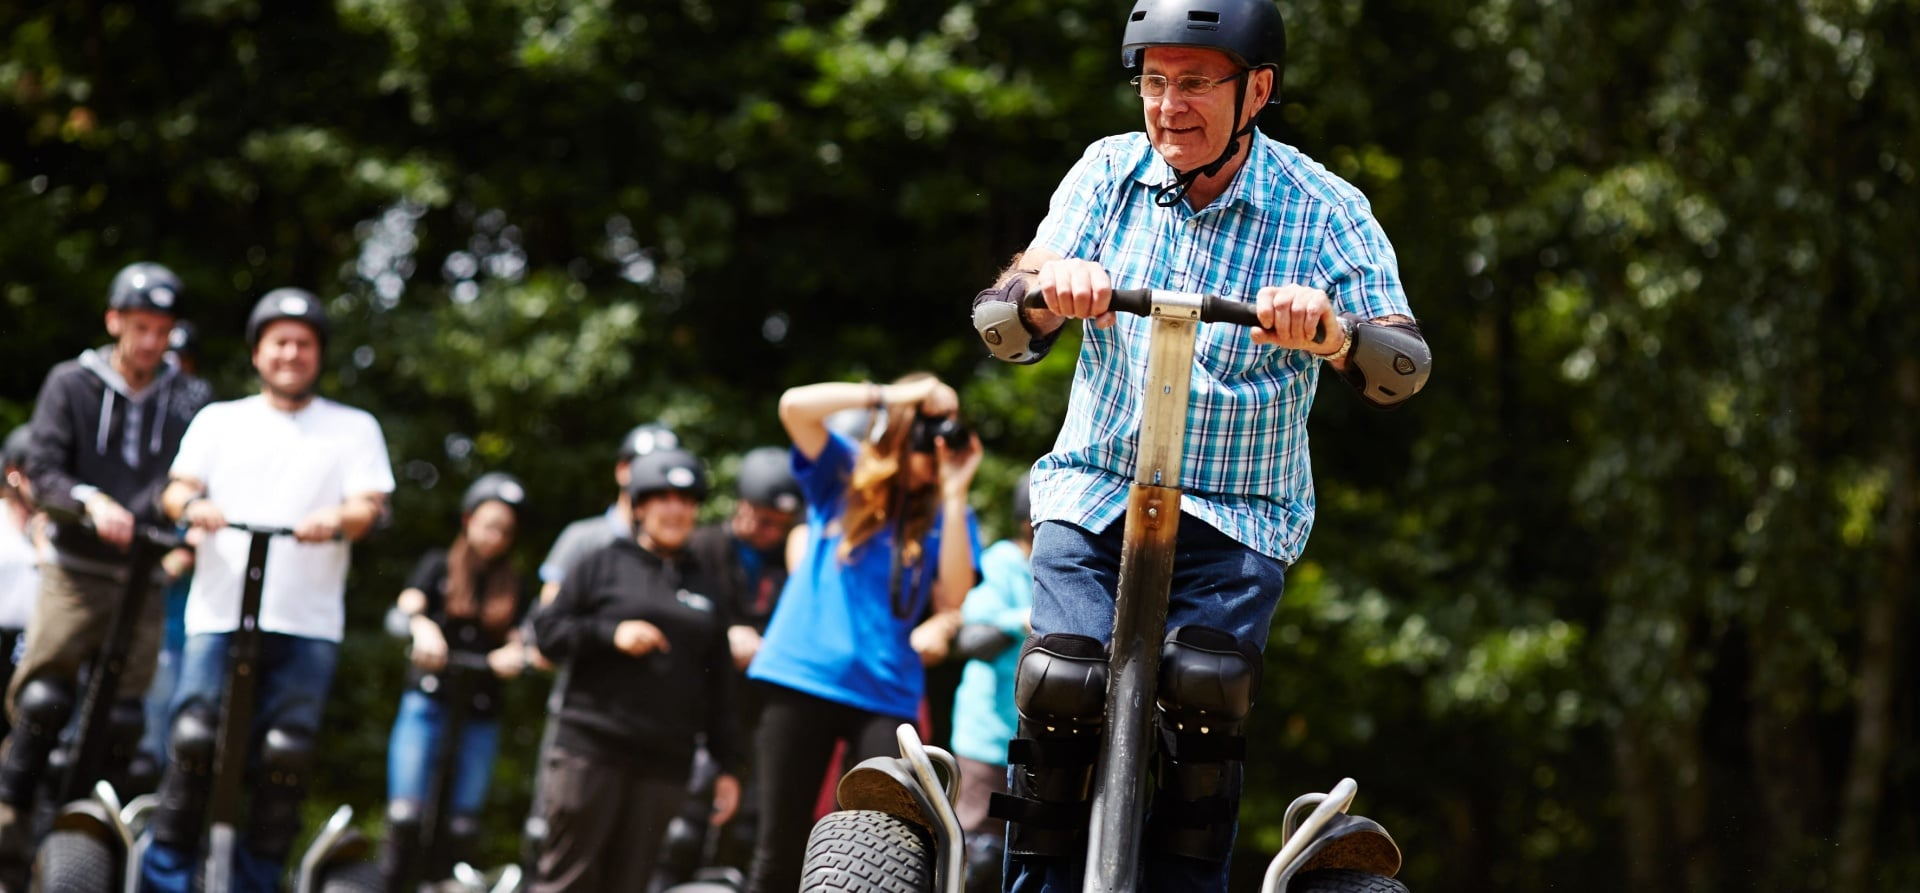 Segway Adventure For 2 Special Offer-3